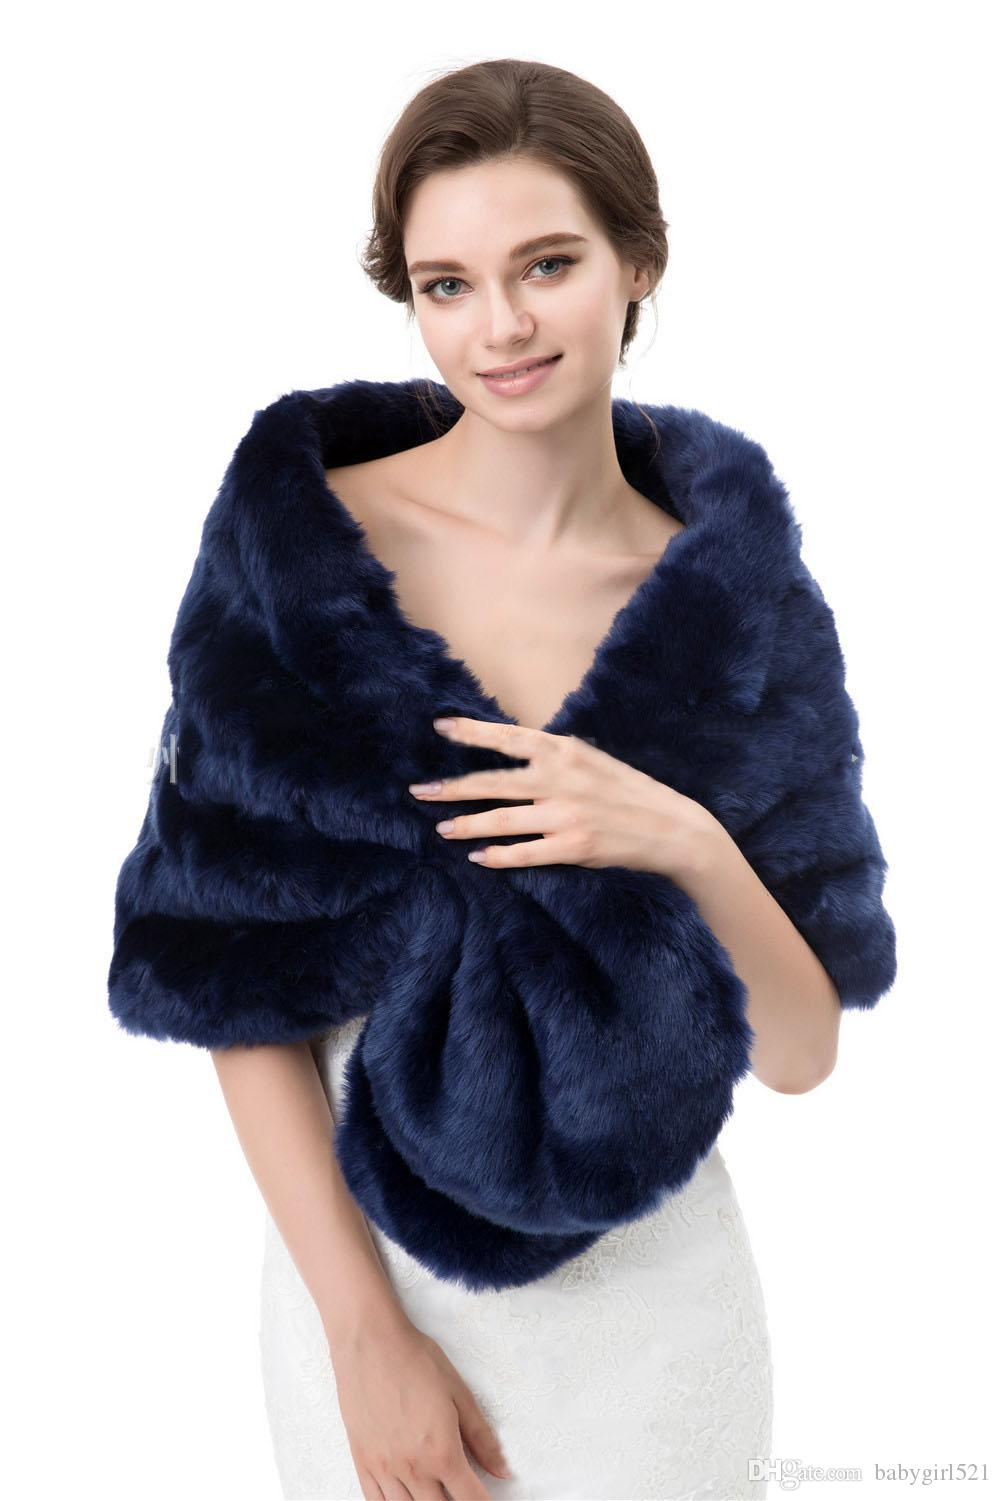 Vintage Princess White Black Cheap Bridal Wraps Warm Faux Fur Wedding Cloak Jacket Royal Blue Bolero Cover up Stole Winter Women Shrug Shawl